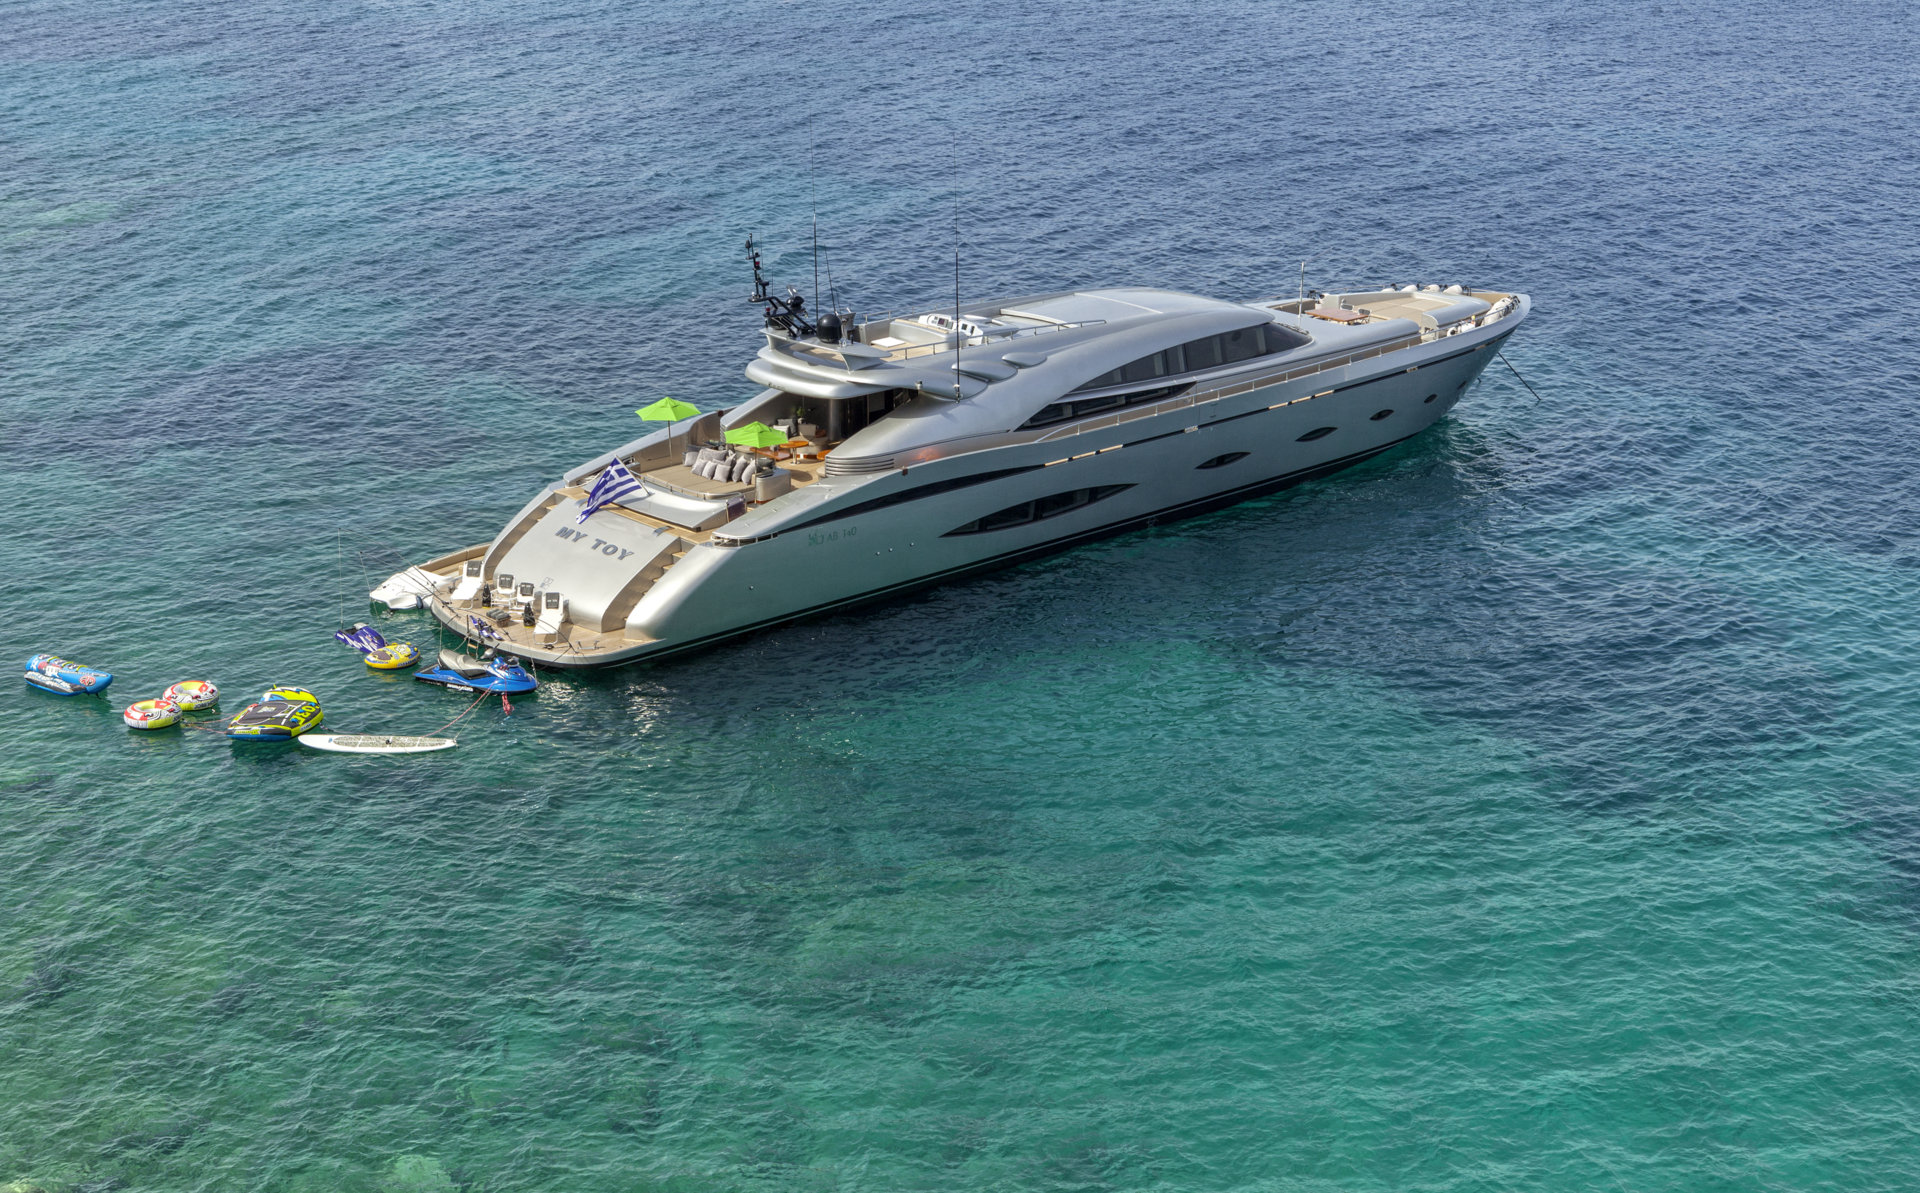 M/Y MY TOY yacht for charter anchored